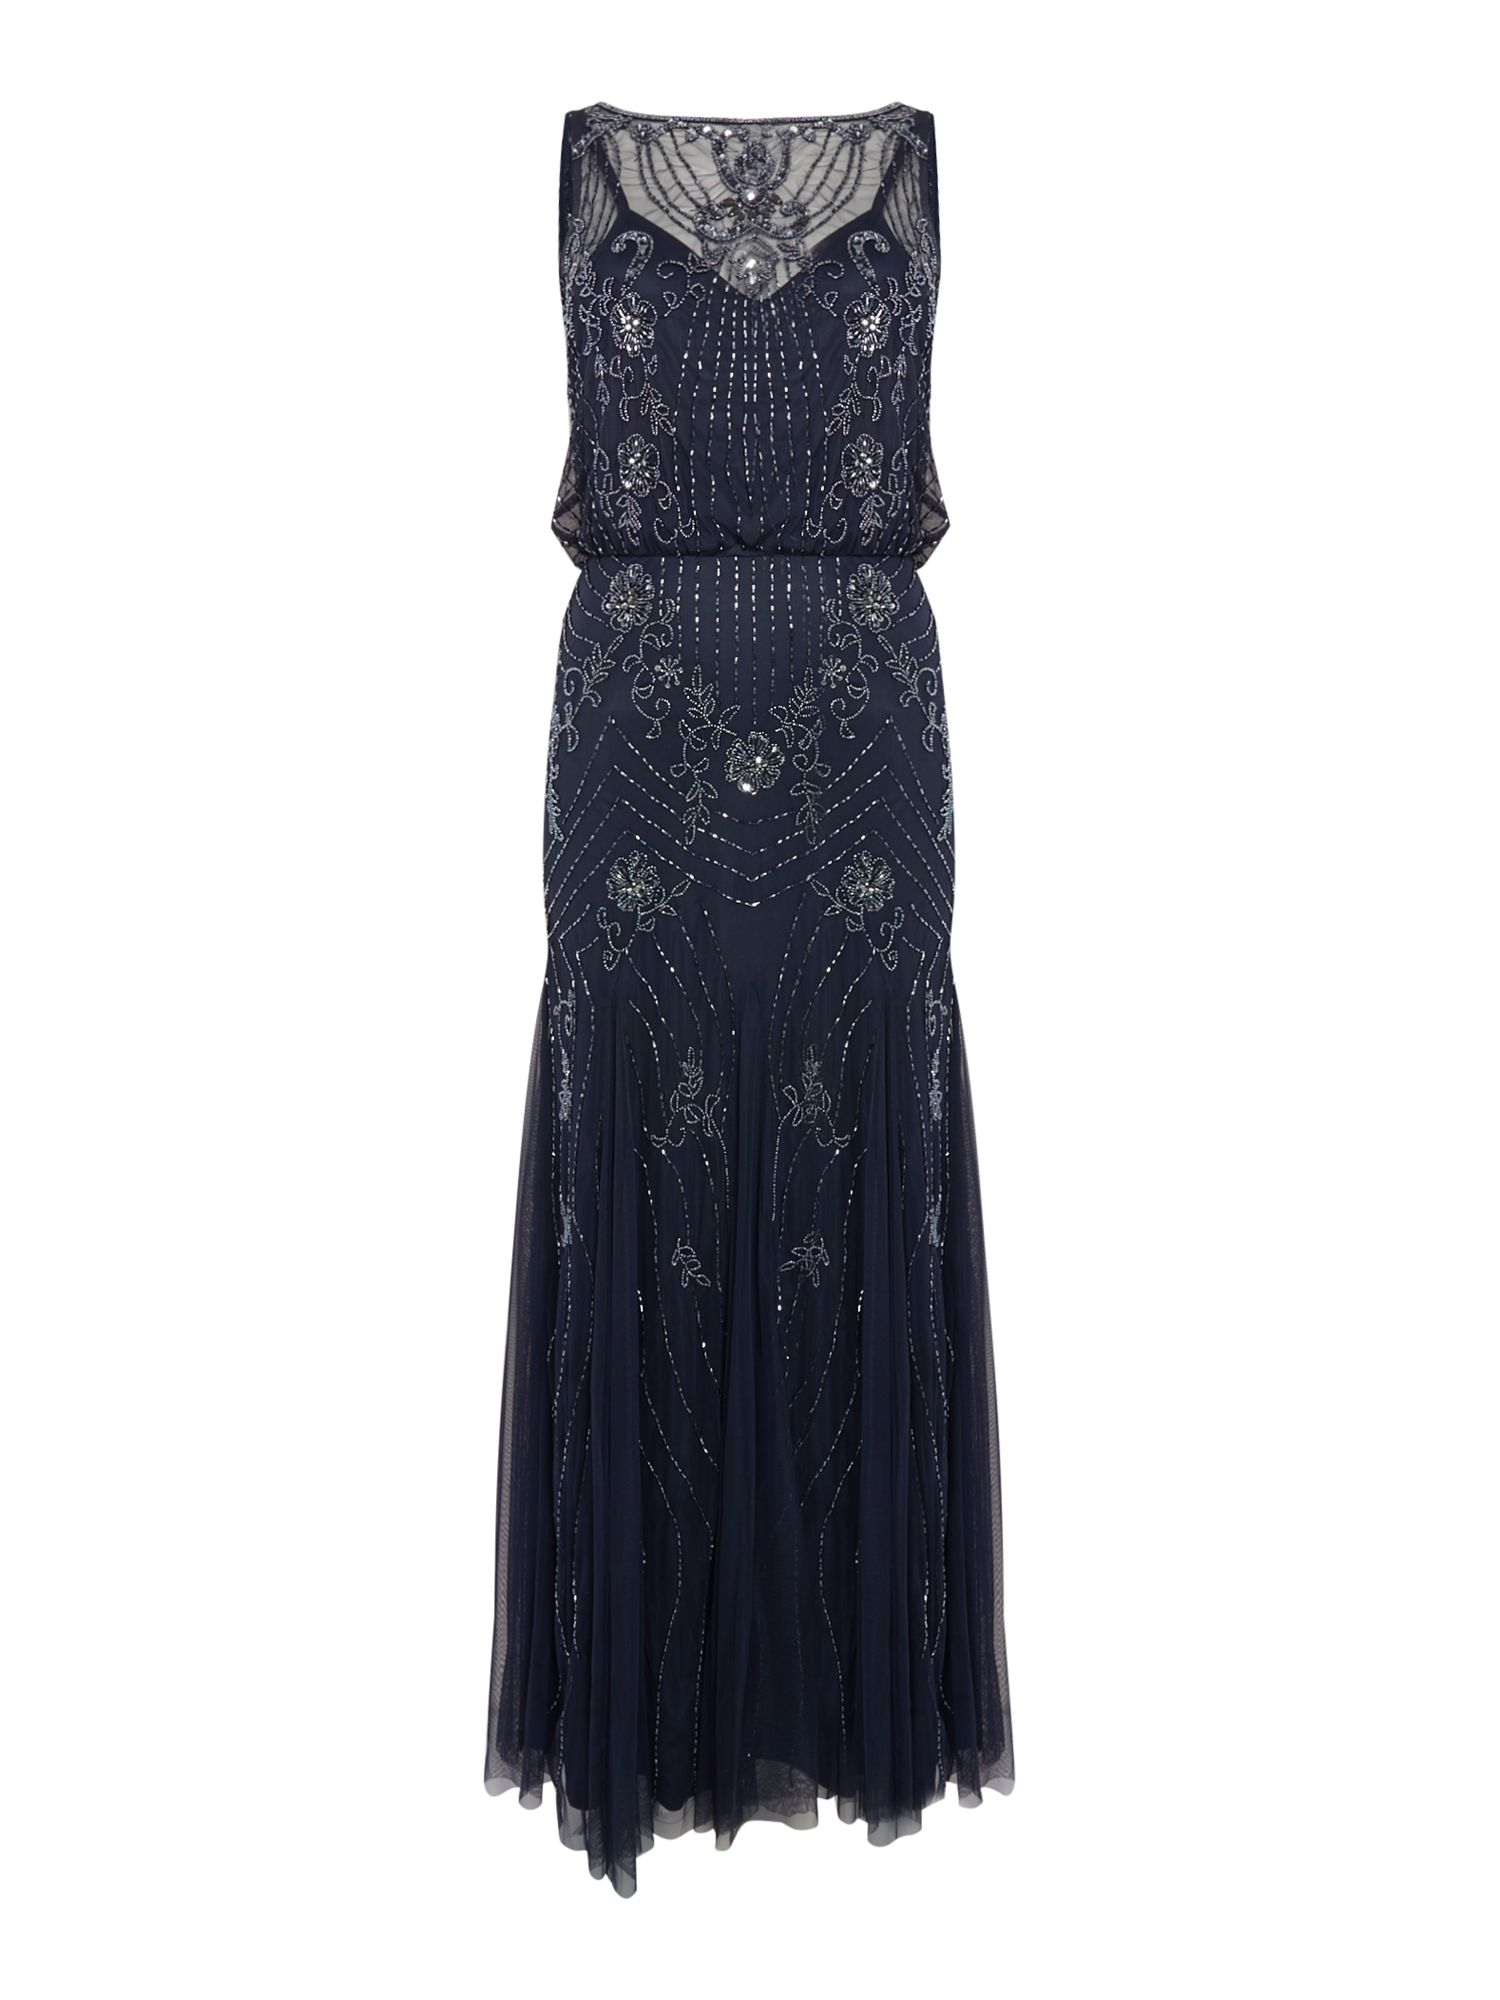 Lace and Beads High neck embellished mesh gown, Blue